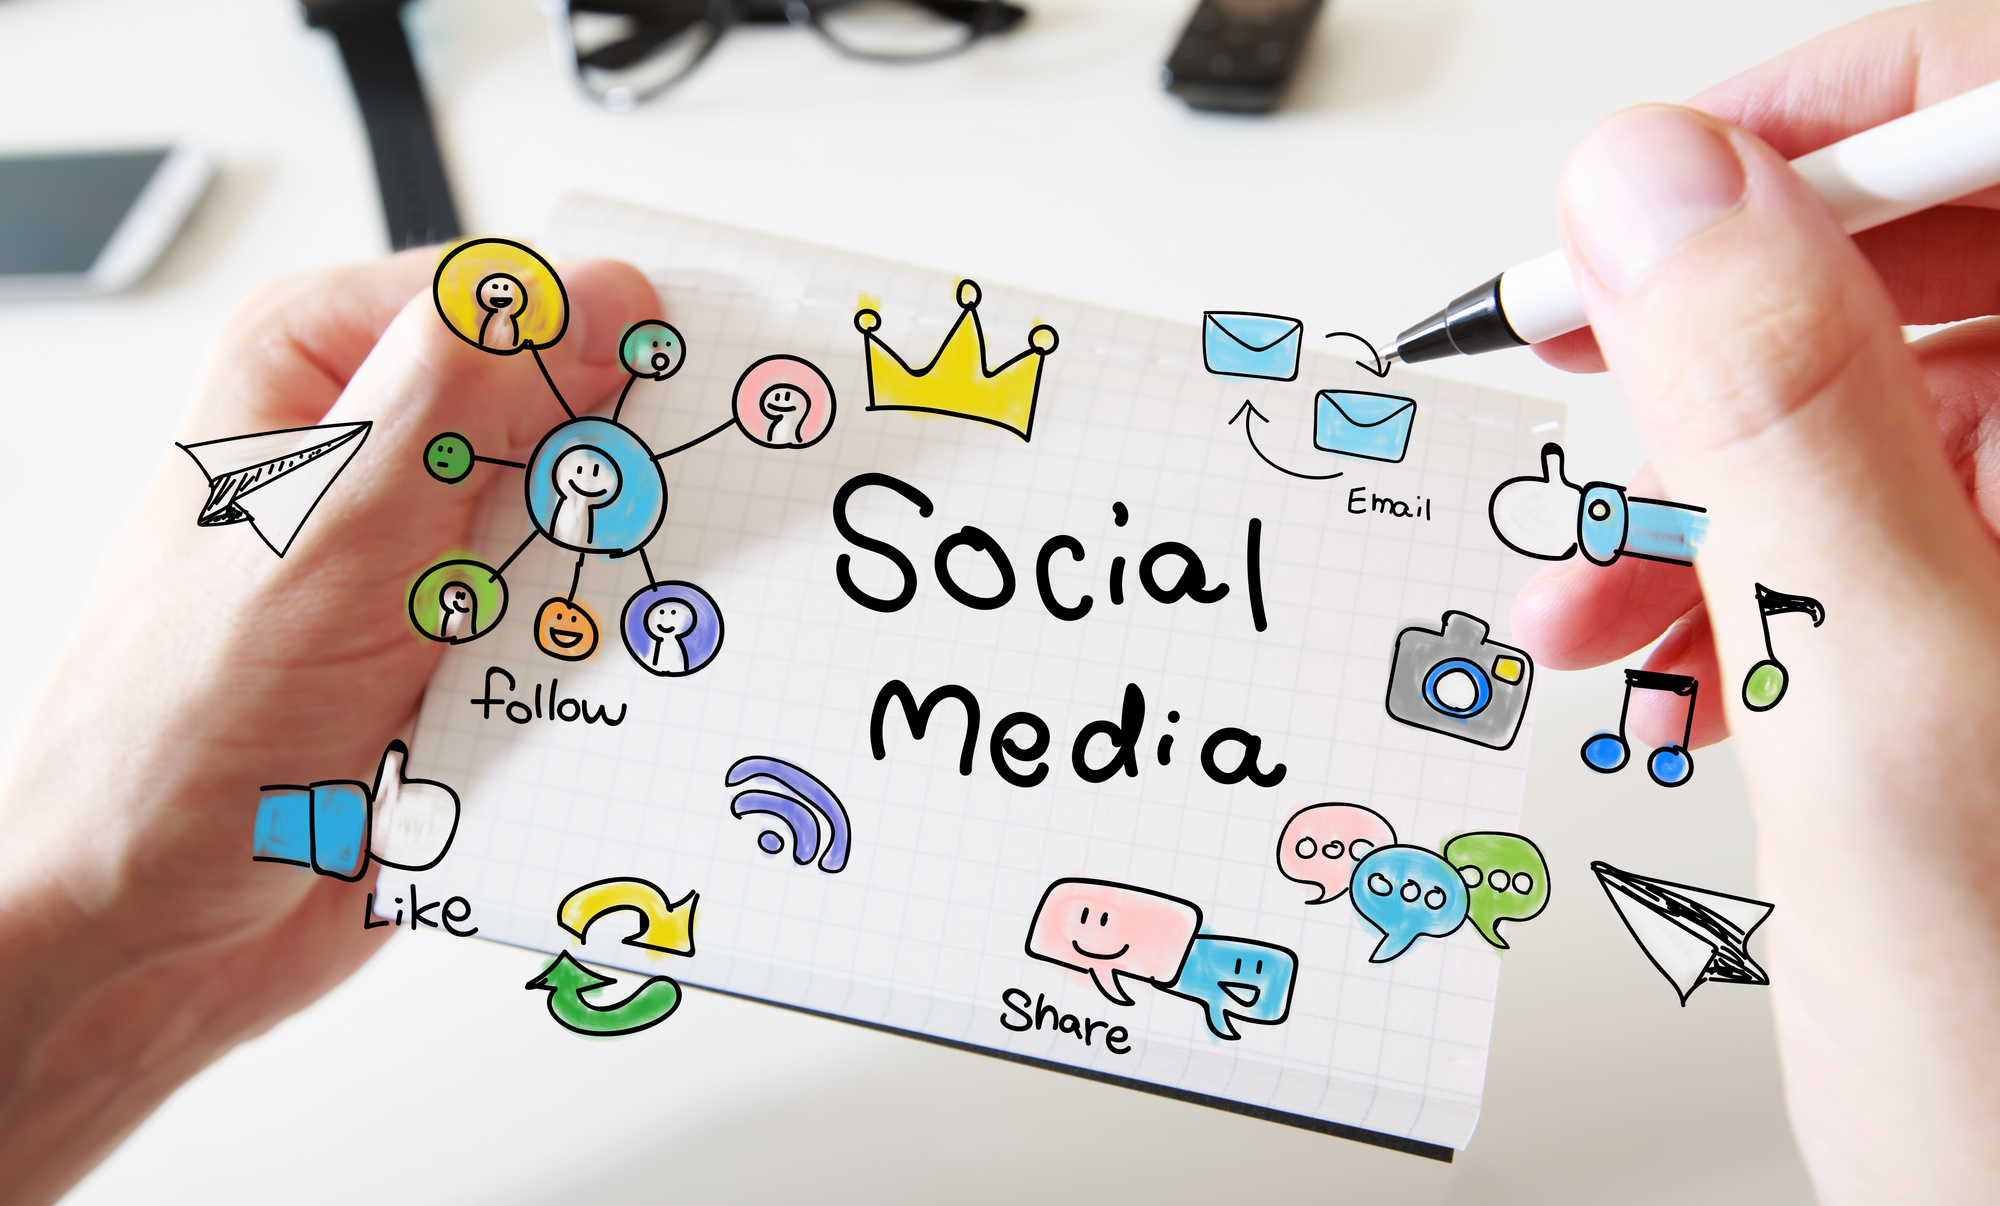 The Way To Create A Social Media How A Step-By-Step Guide To Follow